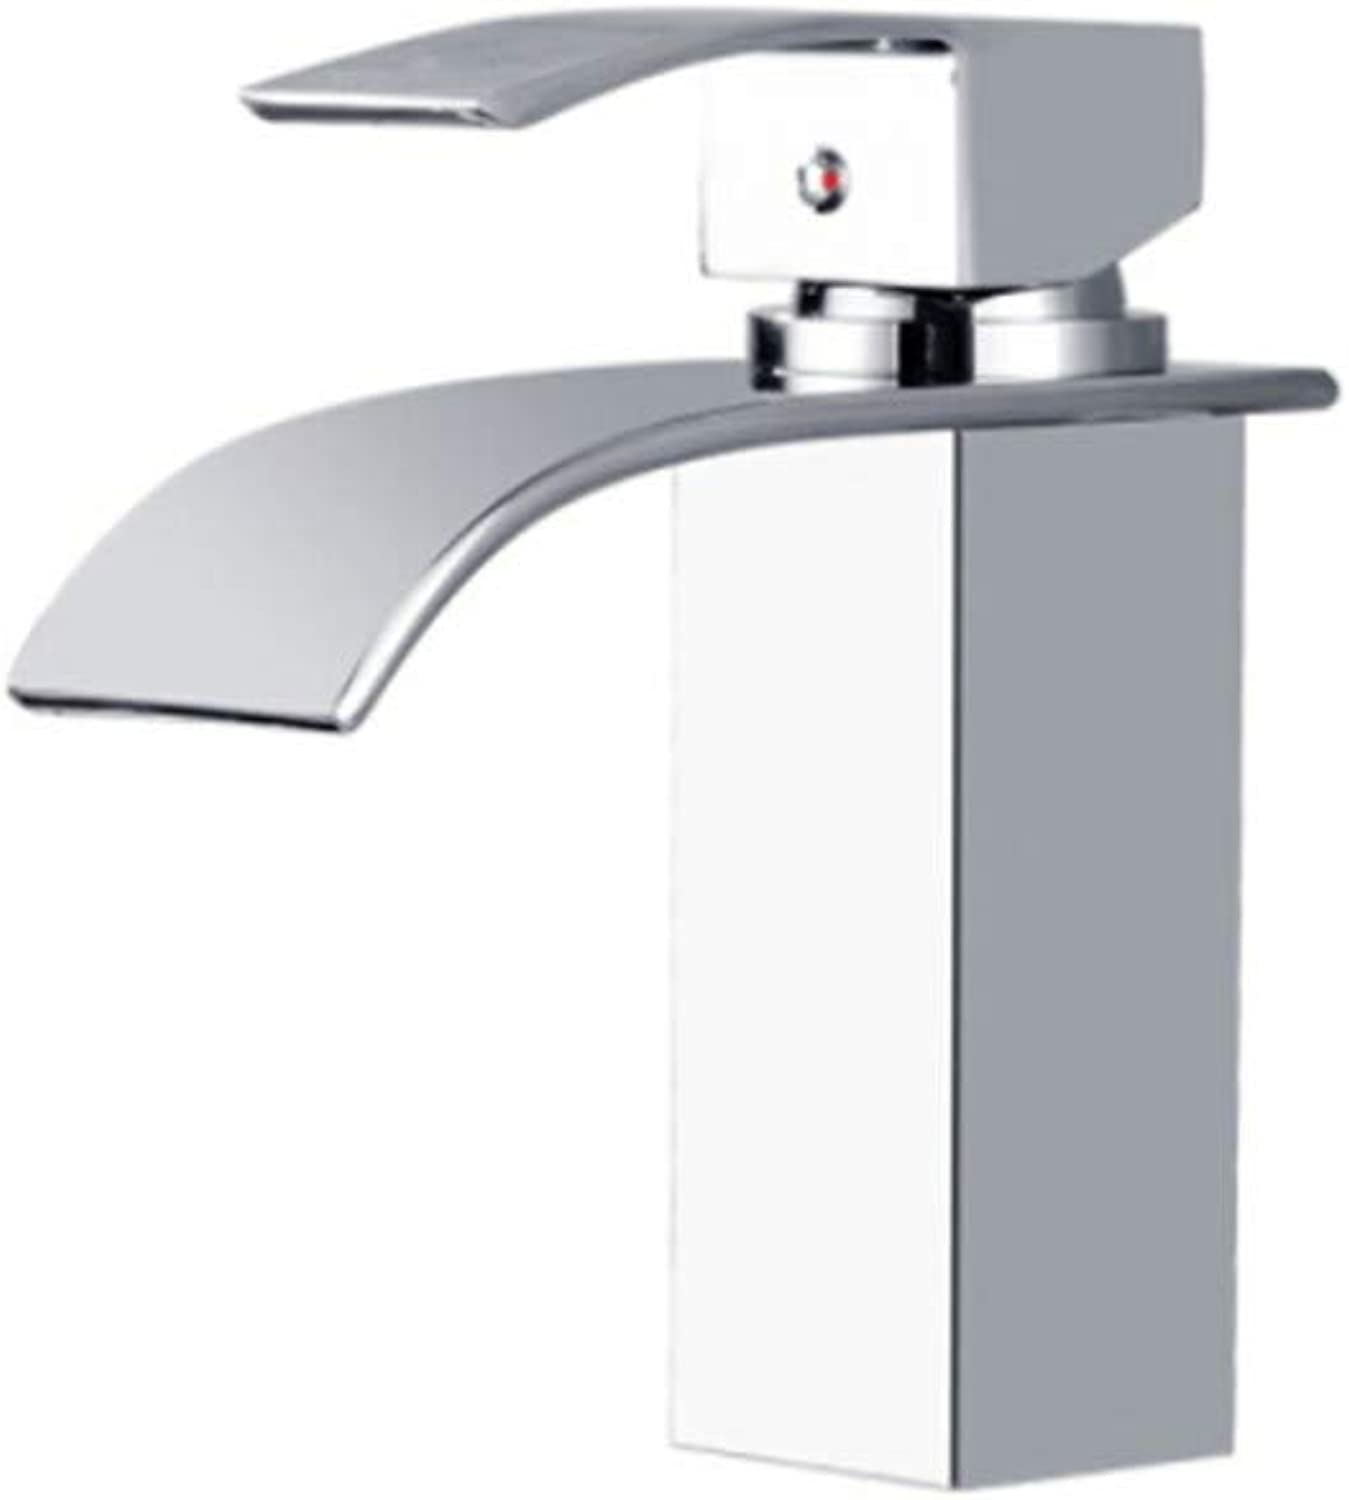 Faucet Waste Mono Spoutbathroom Faucet Cold and Hot Bathroom Cabinet Washbasin Waterfall Single Hole